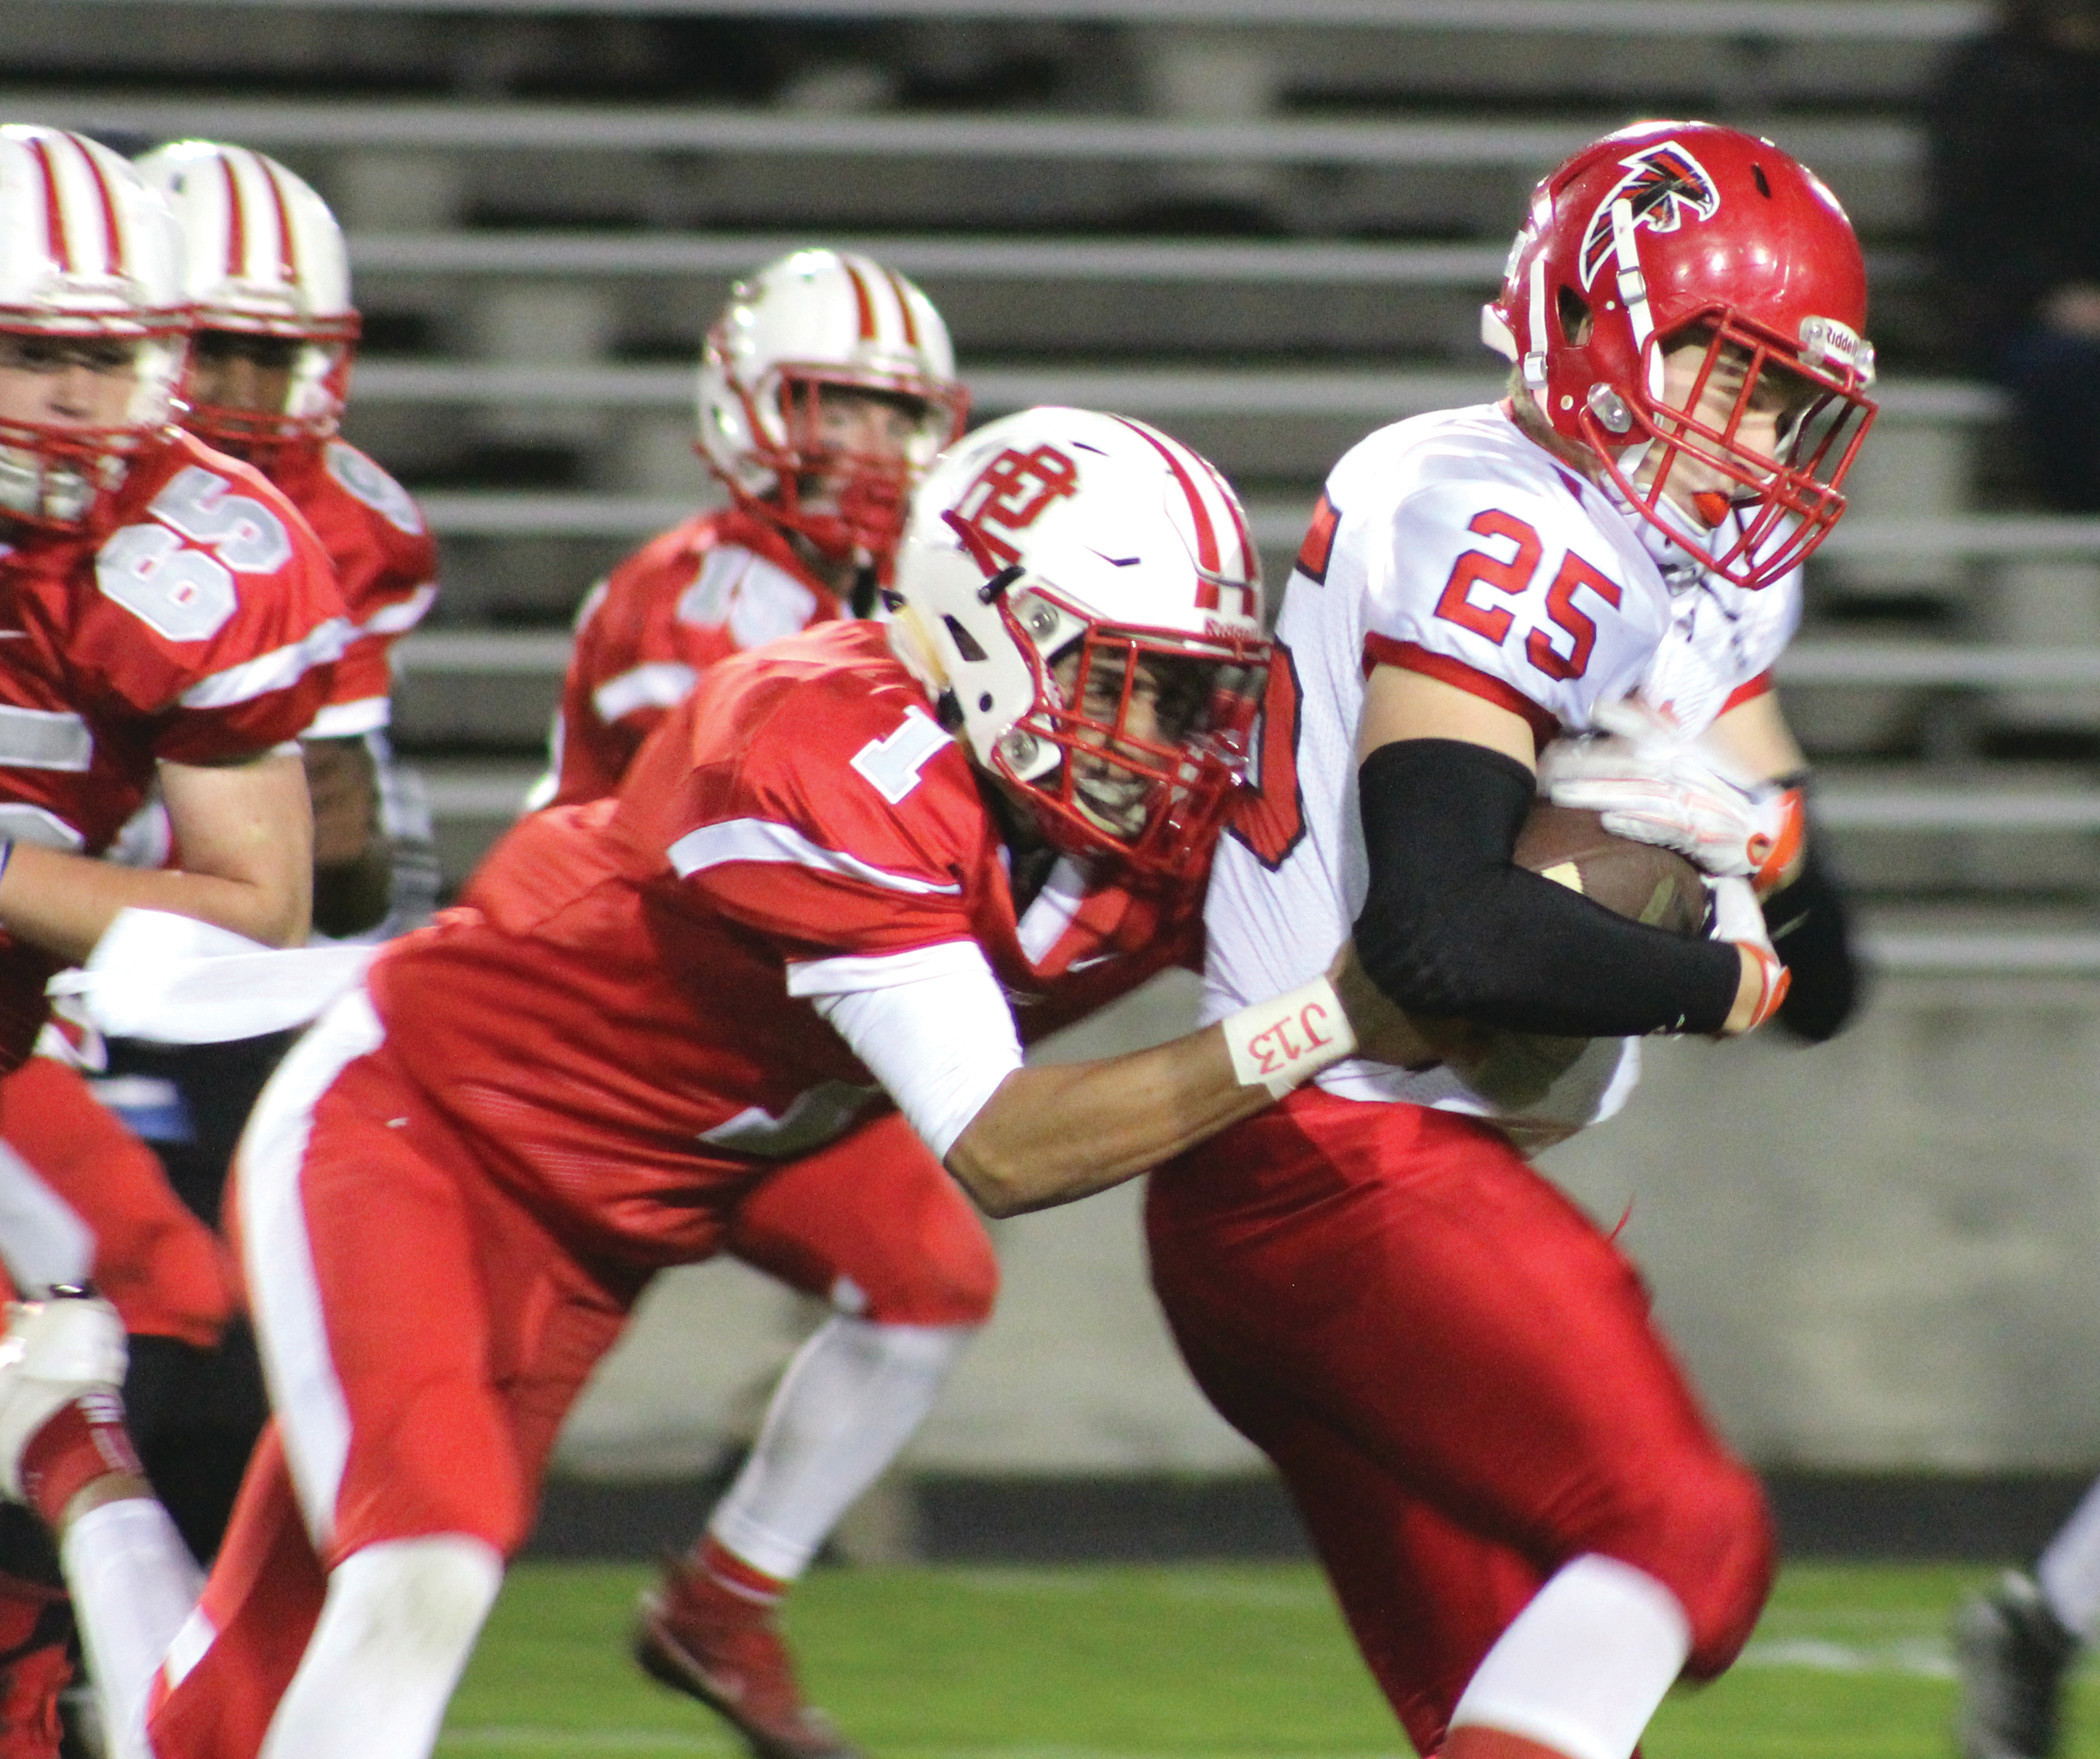 TOUGH TO TACKLE: Will Such will be a key player for Cranston West on both sides of the ball this season.